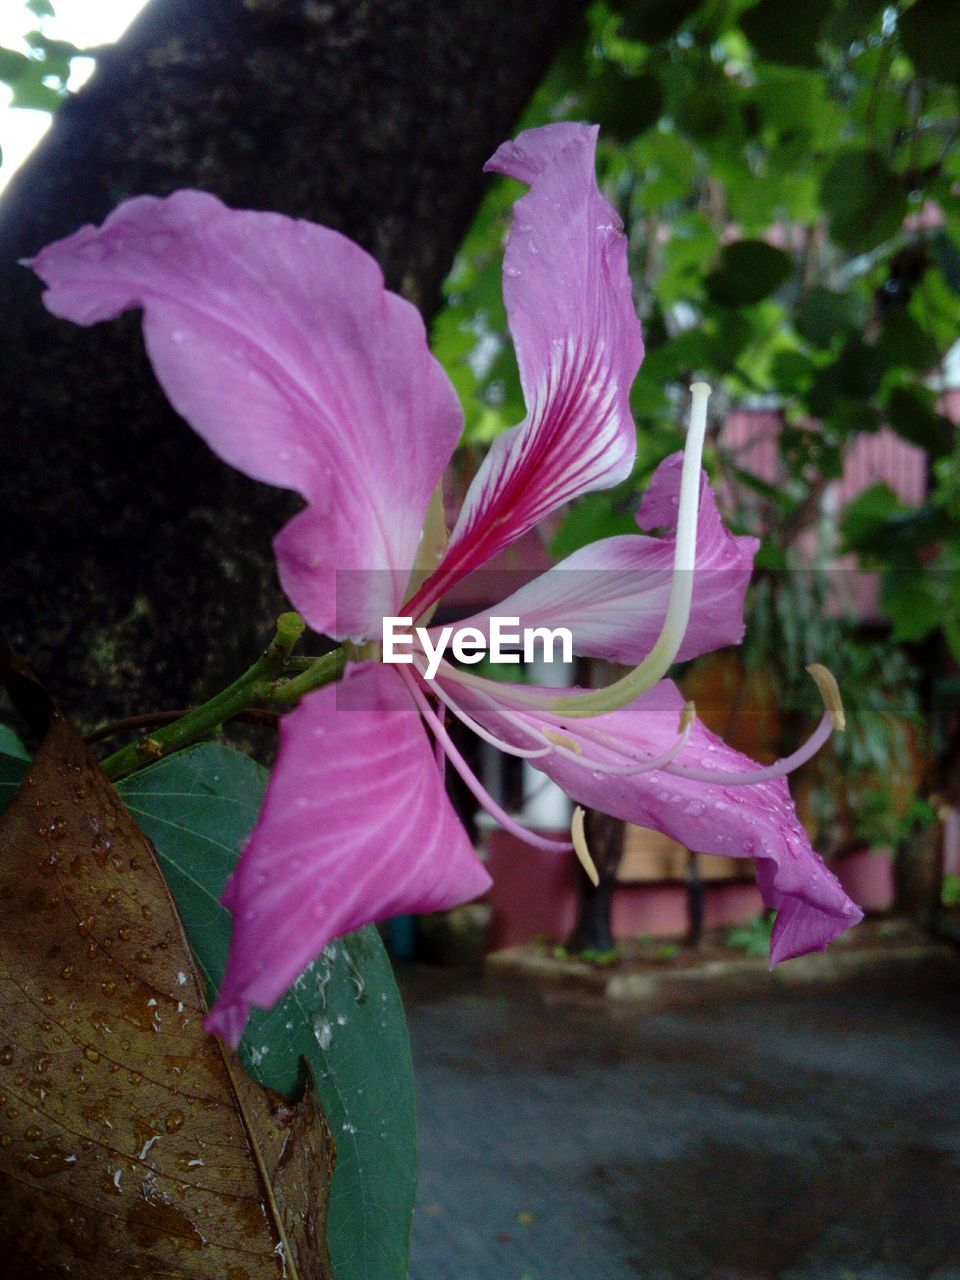 flower, petal, growth, fragility, nature, no people, plant, close-up, outdoors, beauty in nature, freshness, blooming, flower head, day